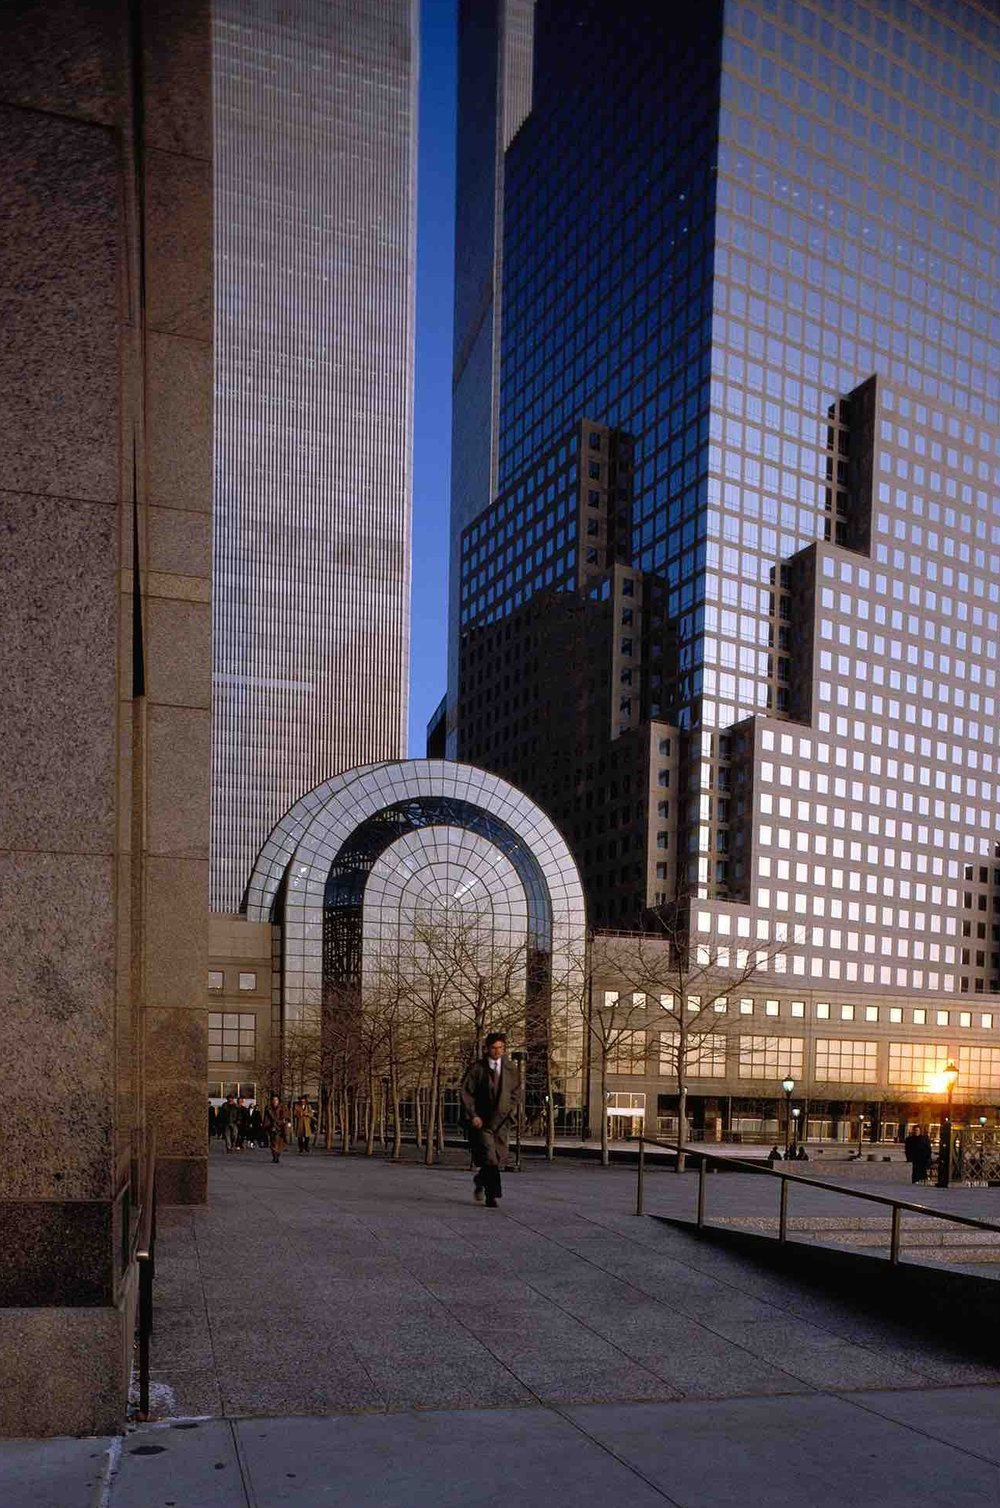 MInoru Yamasaki, World Trade Center (New York, NY) 1973